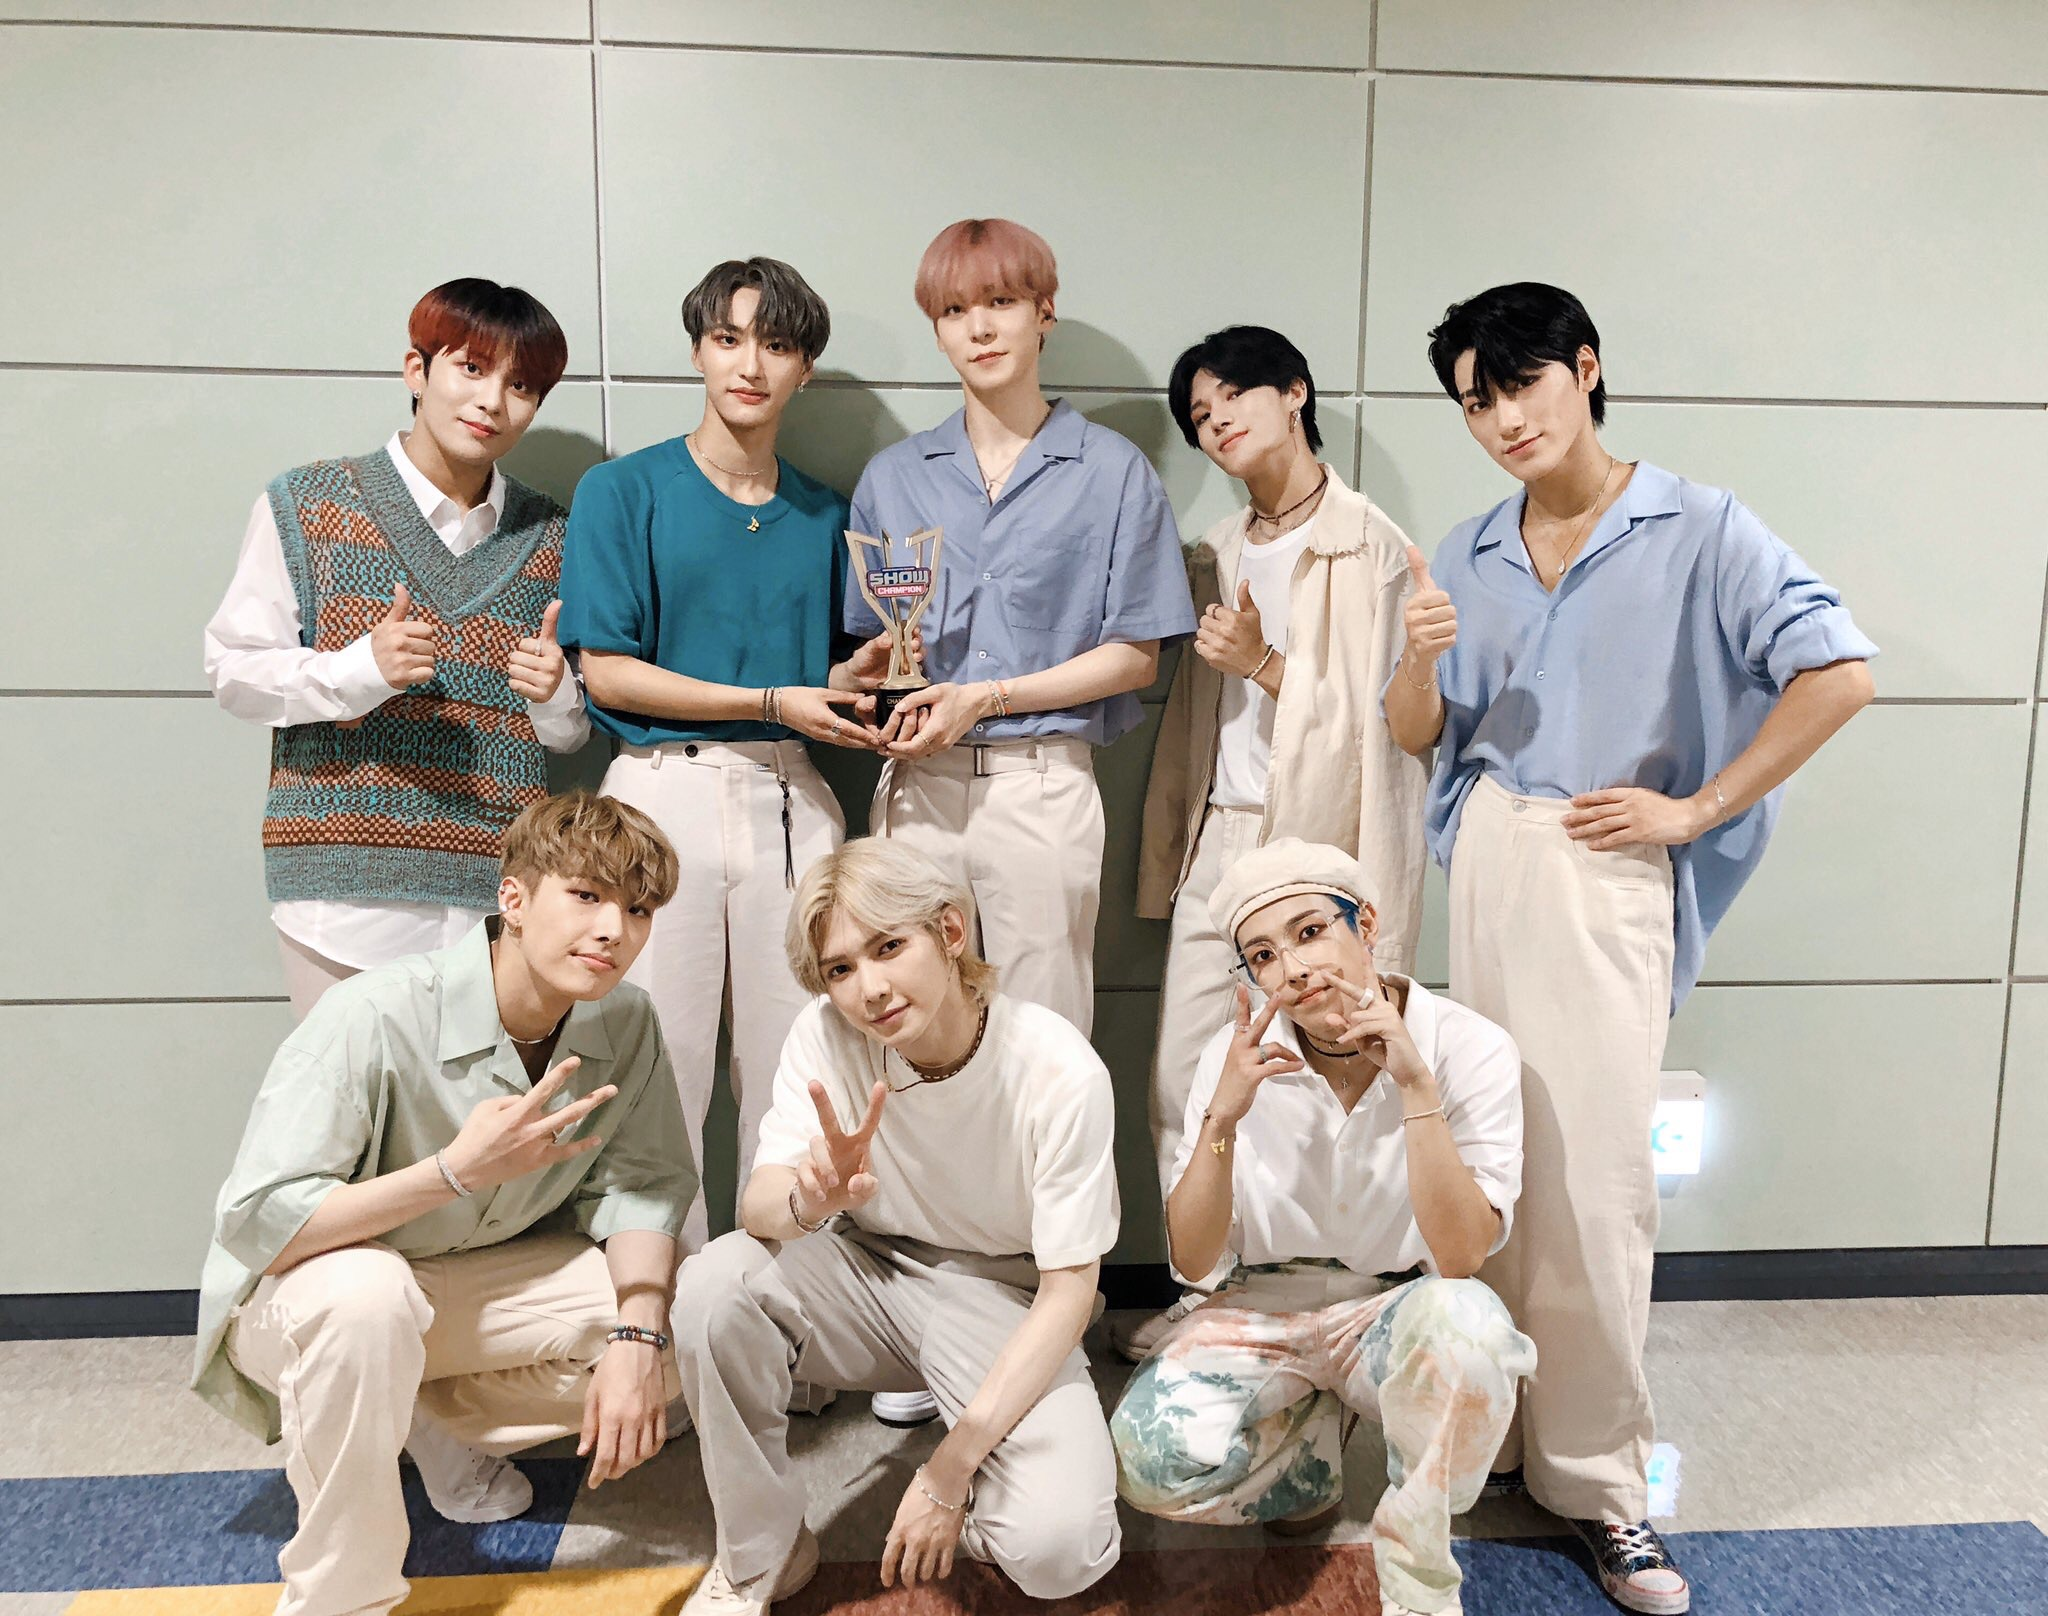 Image by stan ateez